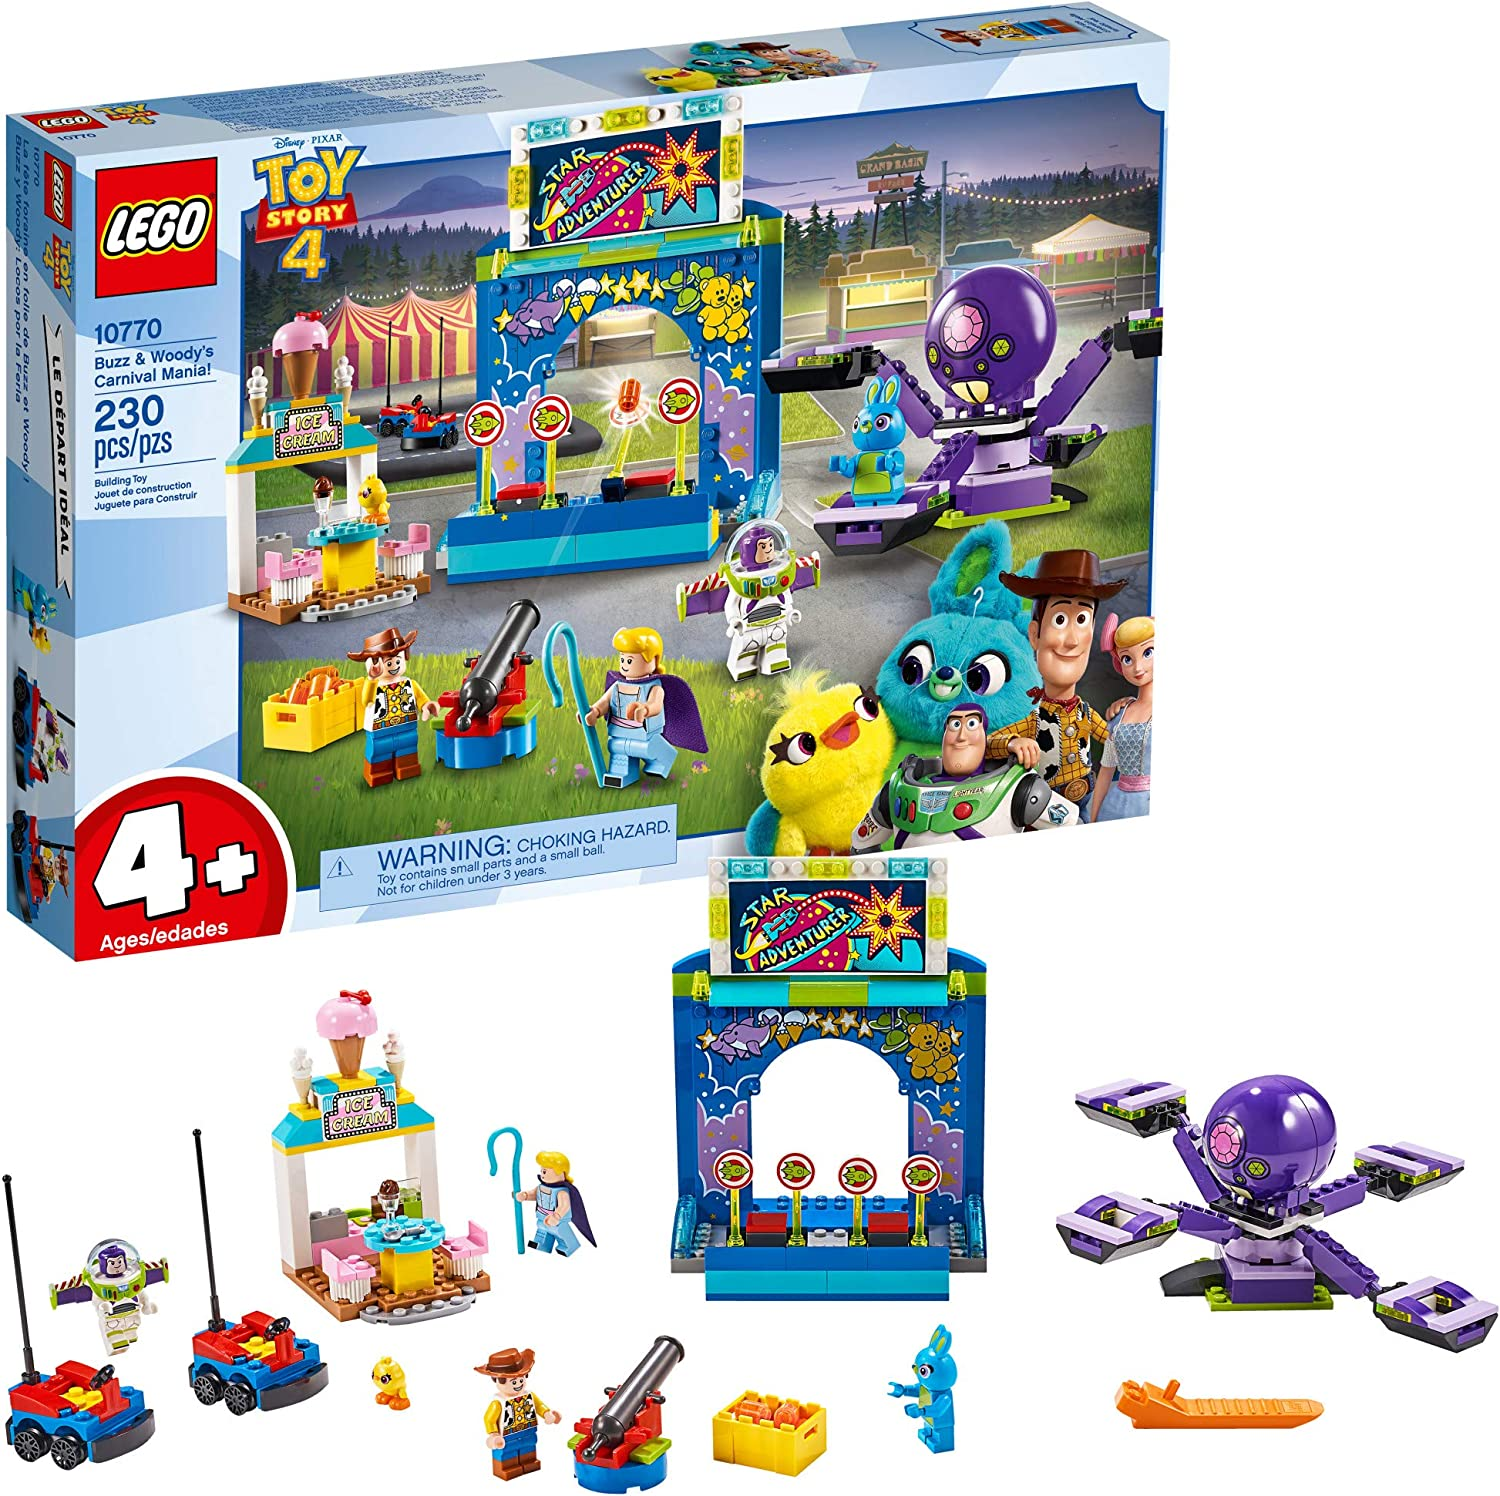 an image of a Lego set featuring the Toy Story 4, for girls 4+ years old.